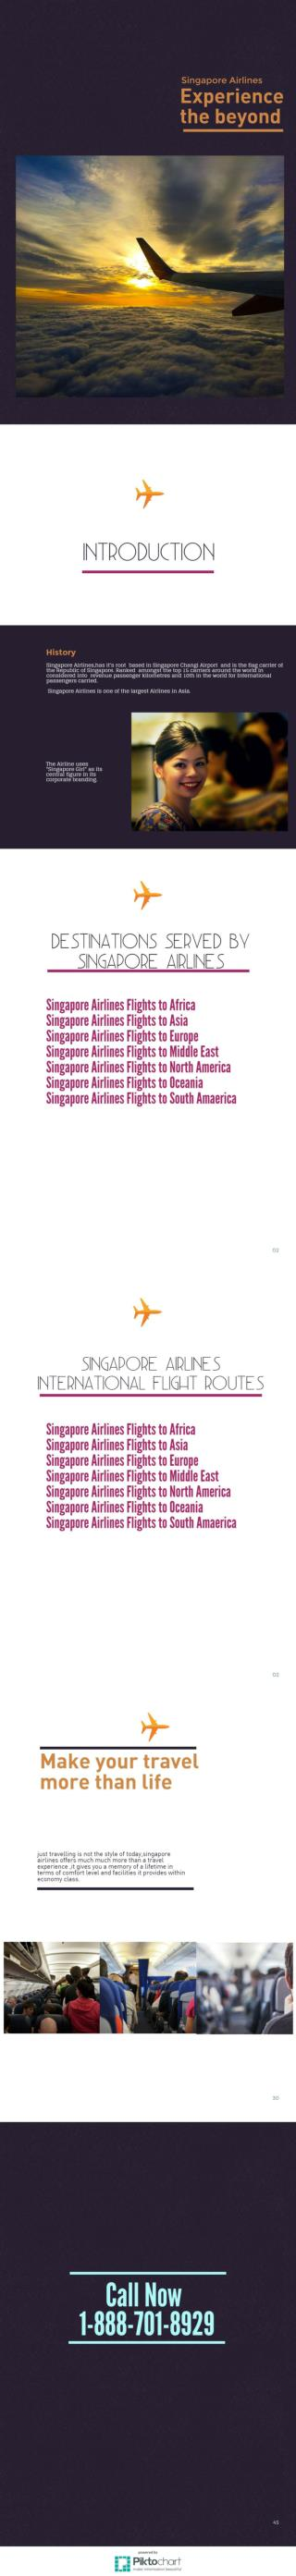 Singapore Airlines Booking  Phone Number 1-888-701-8929